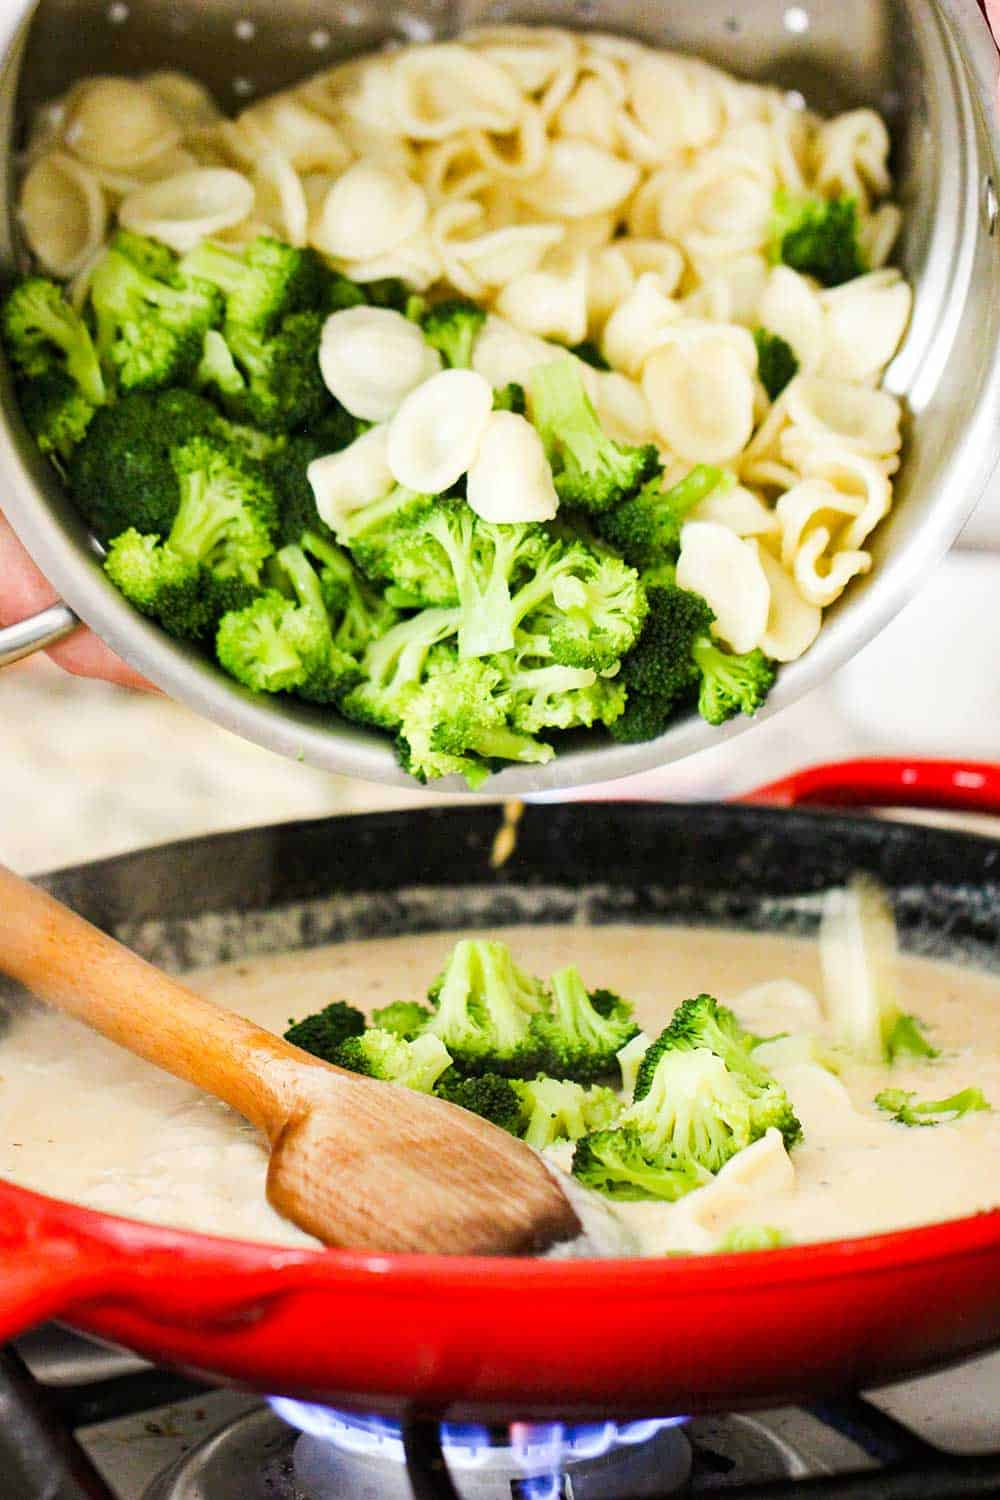 A pot full of cooked pasta shells and broccoli florets being transferred into a skillet with alfredo sauce.